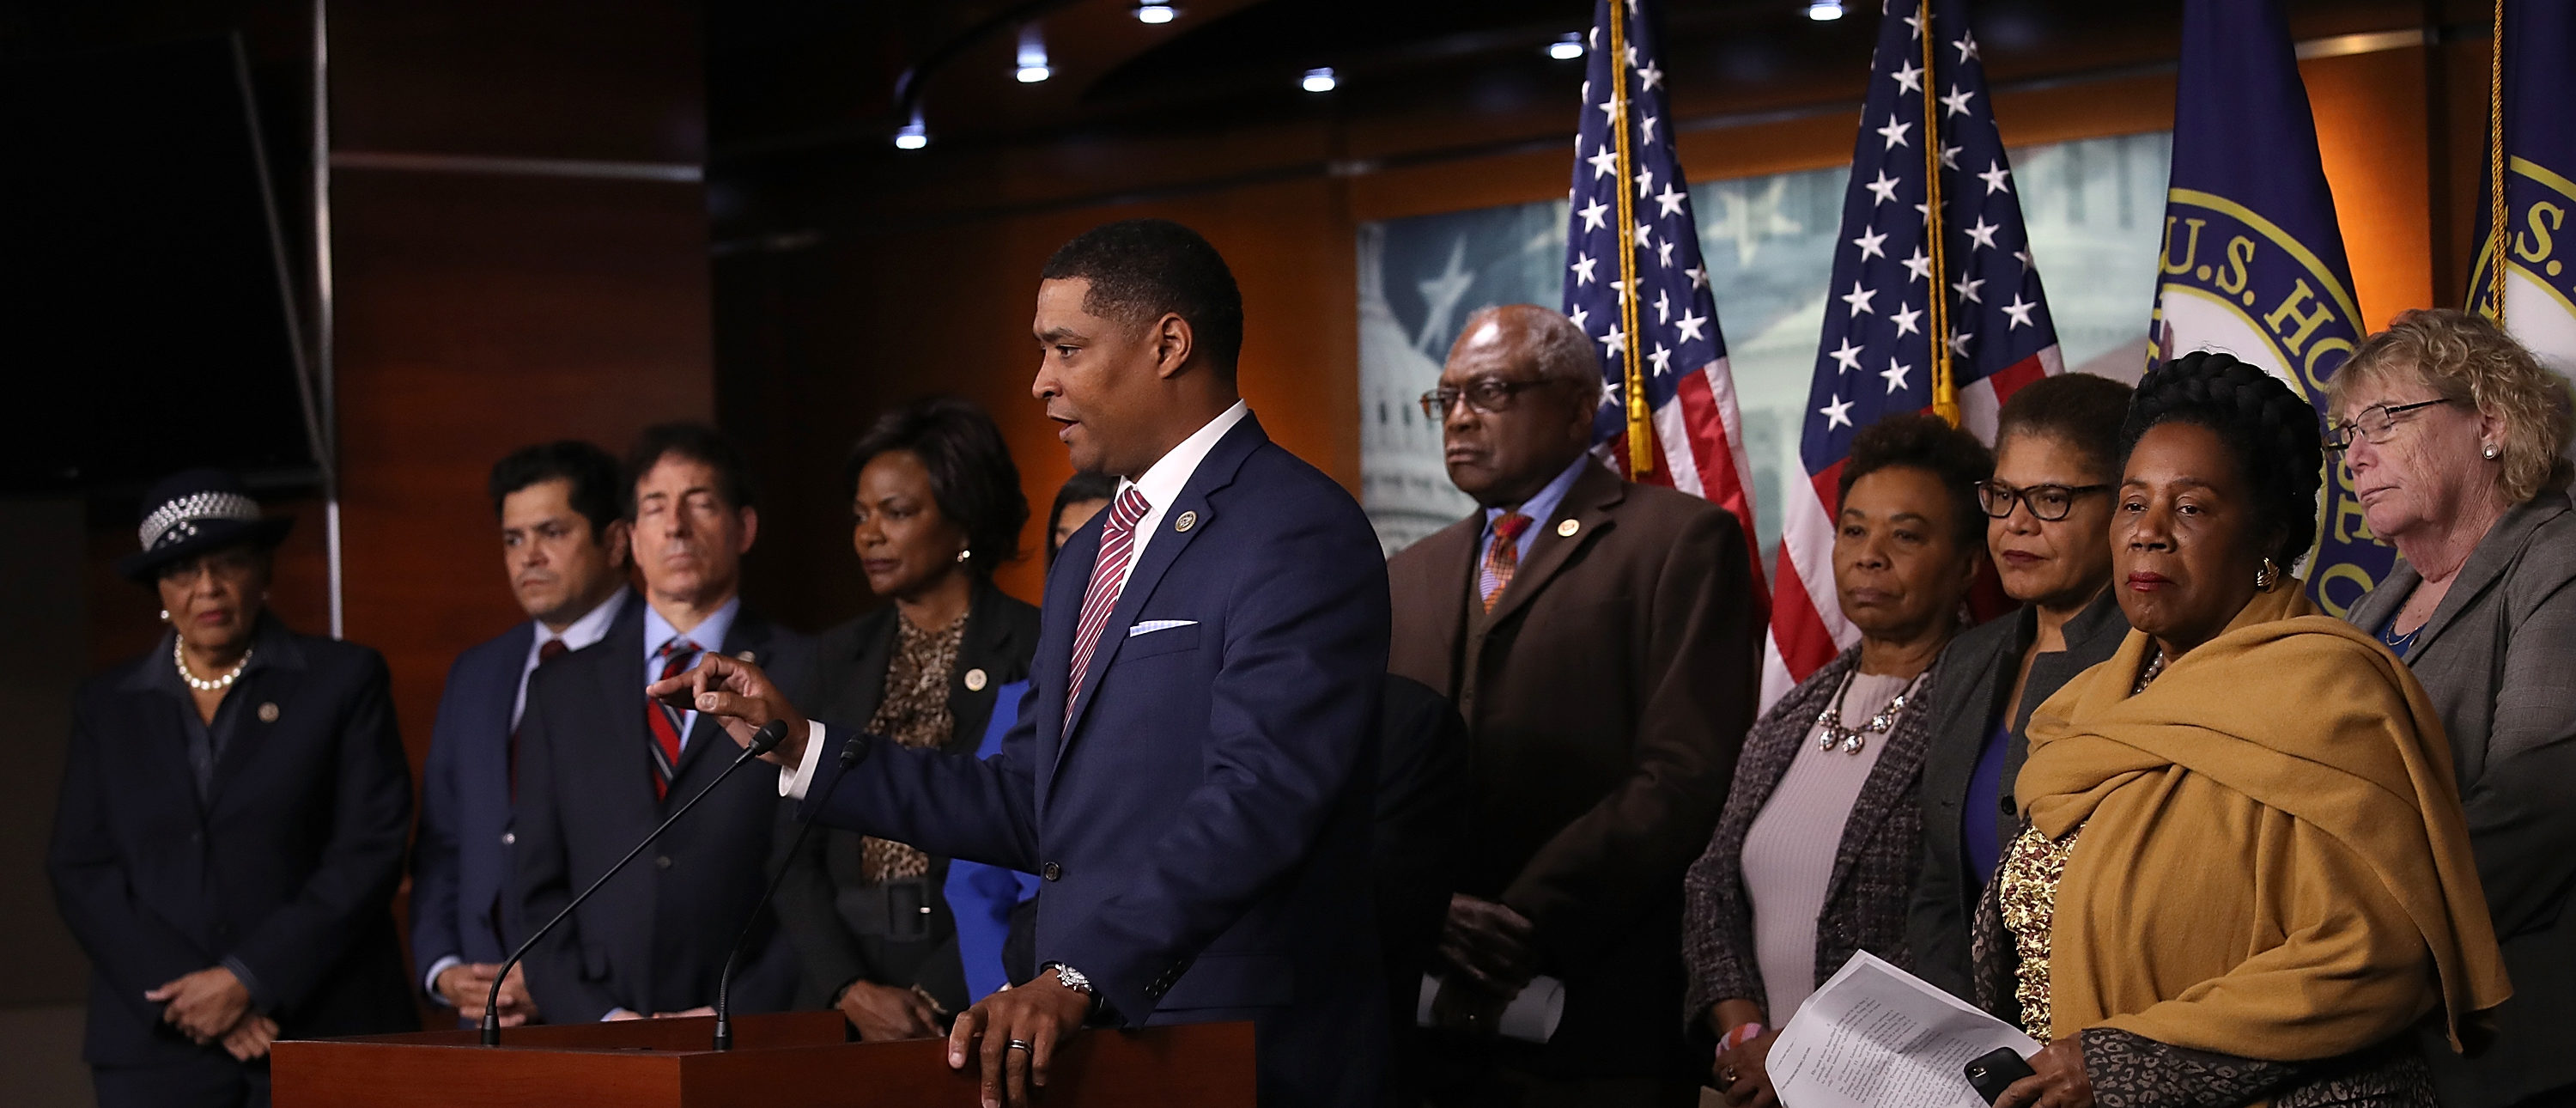 """WASHINGTON, DC - JANUARY 18: Congressional Black Caucus Chairman Cedric Richmond (D-LA) speaks during a press conference with members of the caucus and members of the House Judiciary Committee at the U.S. Capitol on January 18, 2018 in Washington, DC. During the press conference, Richmond discussed the introduction of a resolution to censure President Trump for """"racist"""" comments on Haiti, El Salvador, and African countries. (Photo by Win McNamee/Getty Images)"""